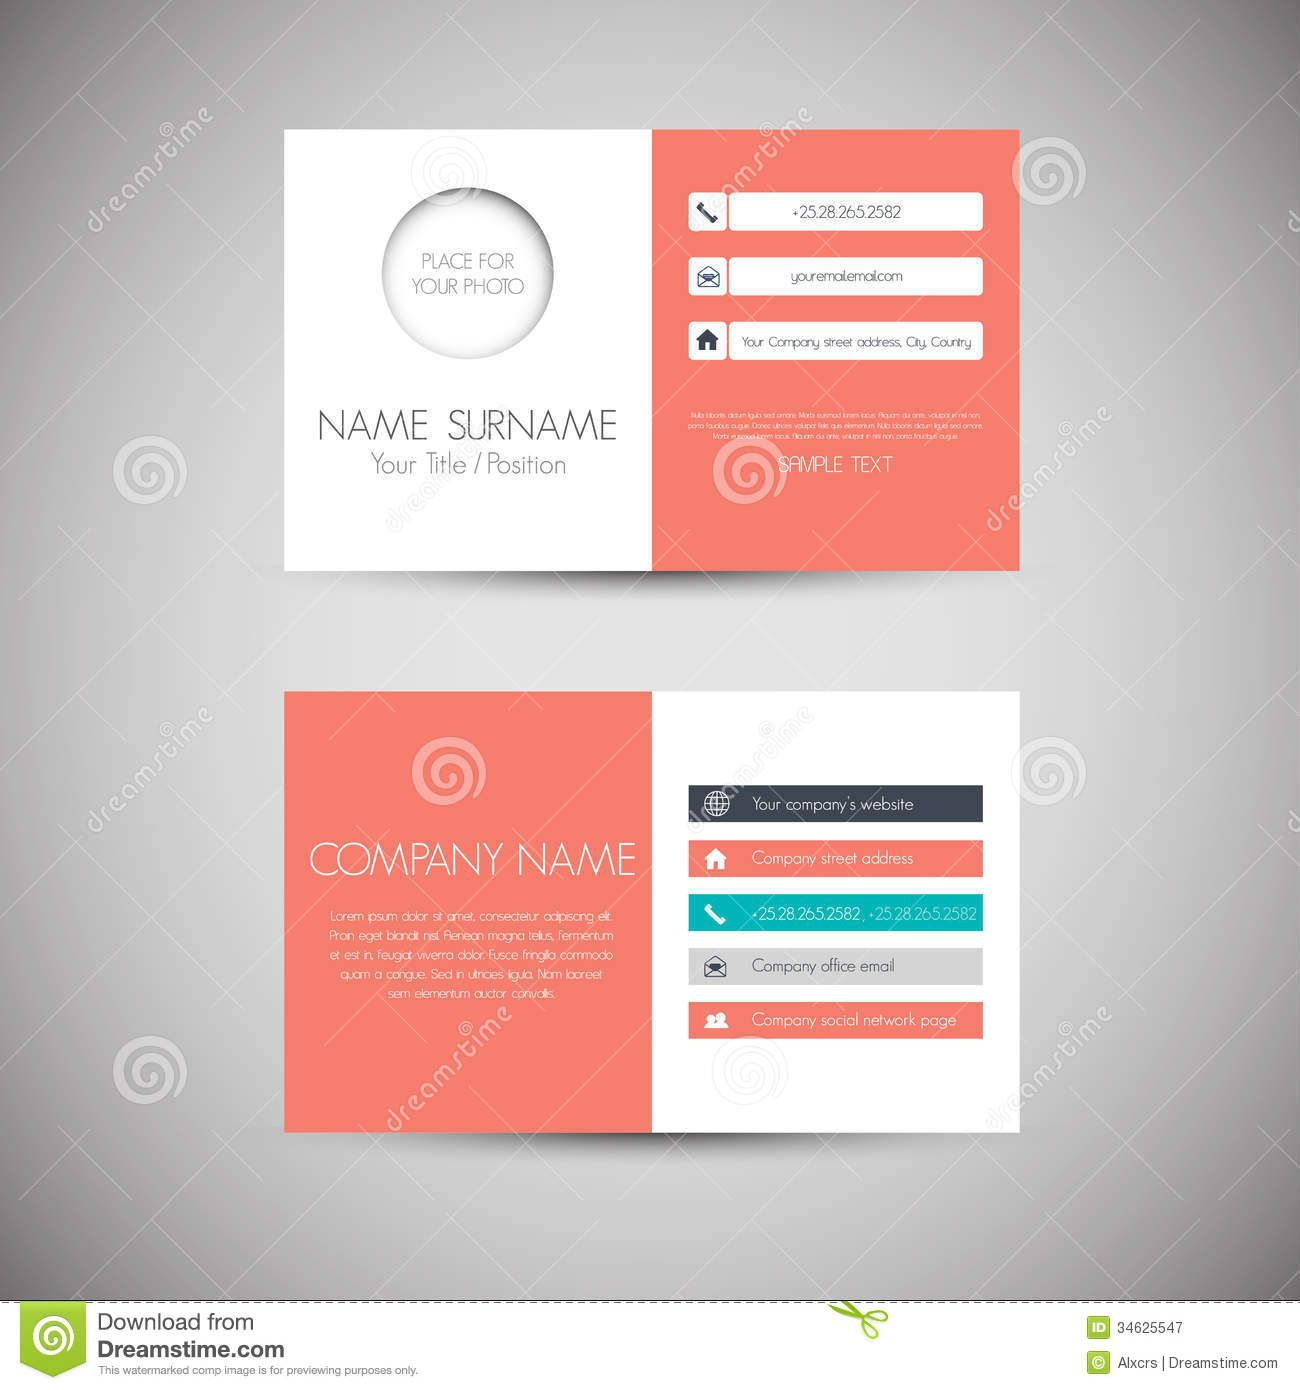 Design Business Card  Pesquisa Google  Design Grafic